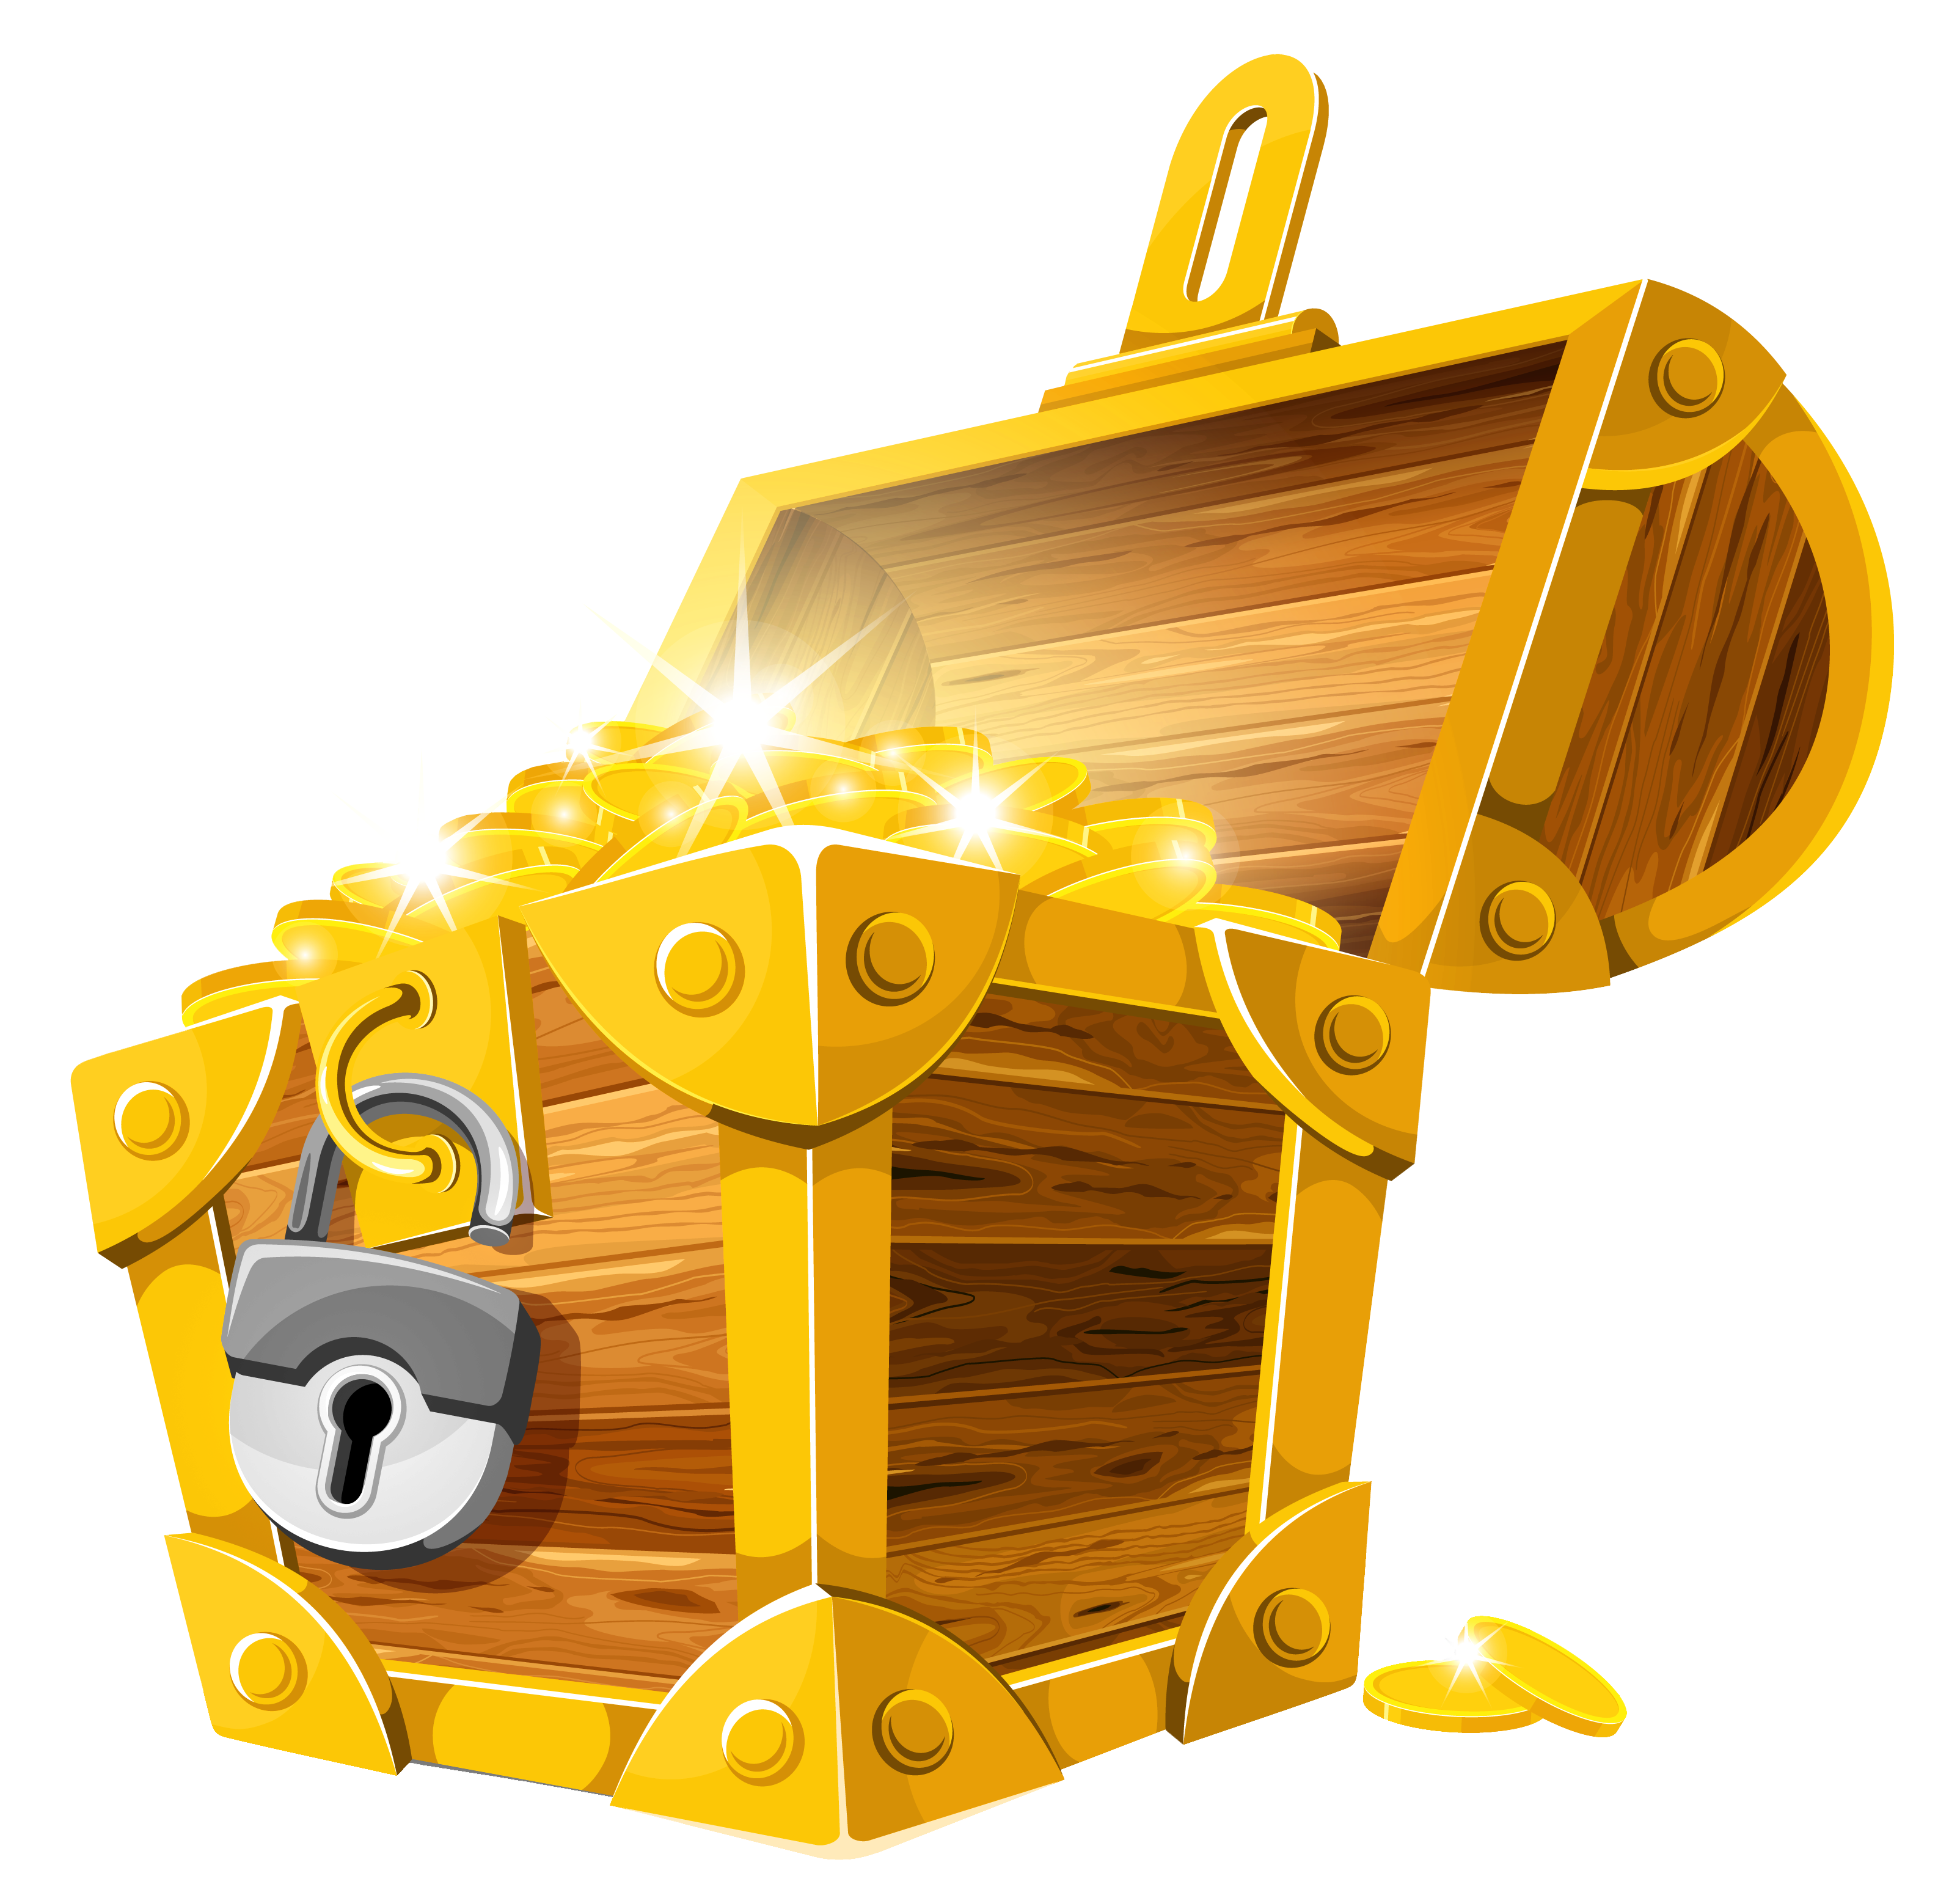 Pirate Treasure Chest PNG HD - 127745